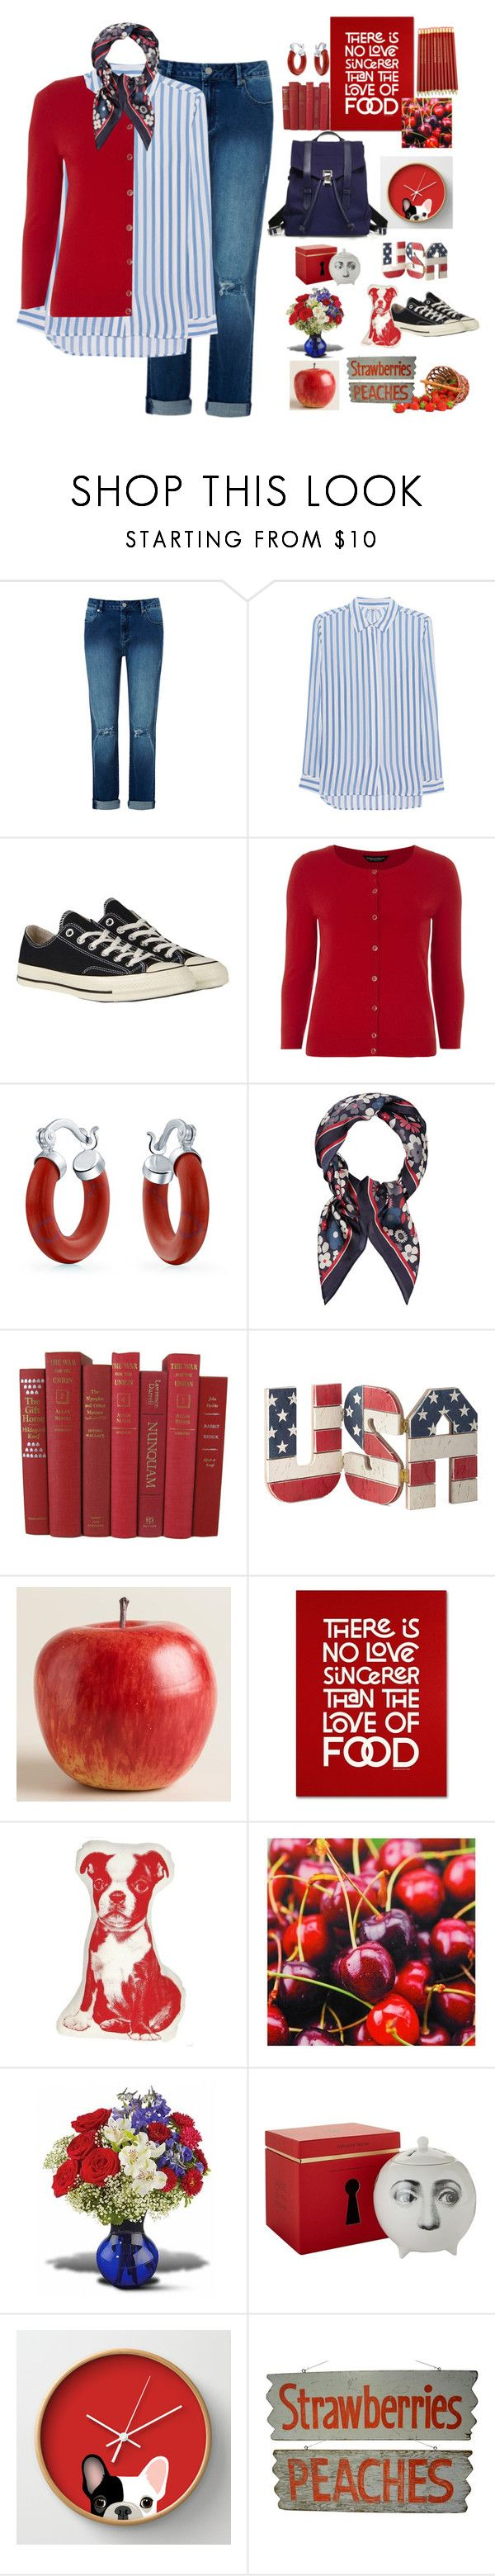 """""""To the Market"""" by nisha-naenae ❤ liked on Polyvore featuring iHeart, Converse, Dorothy Perkins, Bling Jewelry, Accessorize, Cost Plus World Market, Trademark Fine Art, Areaware, Fornasetti and Proenza Schouler"""